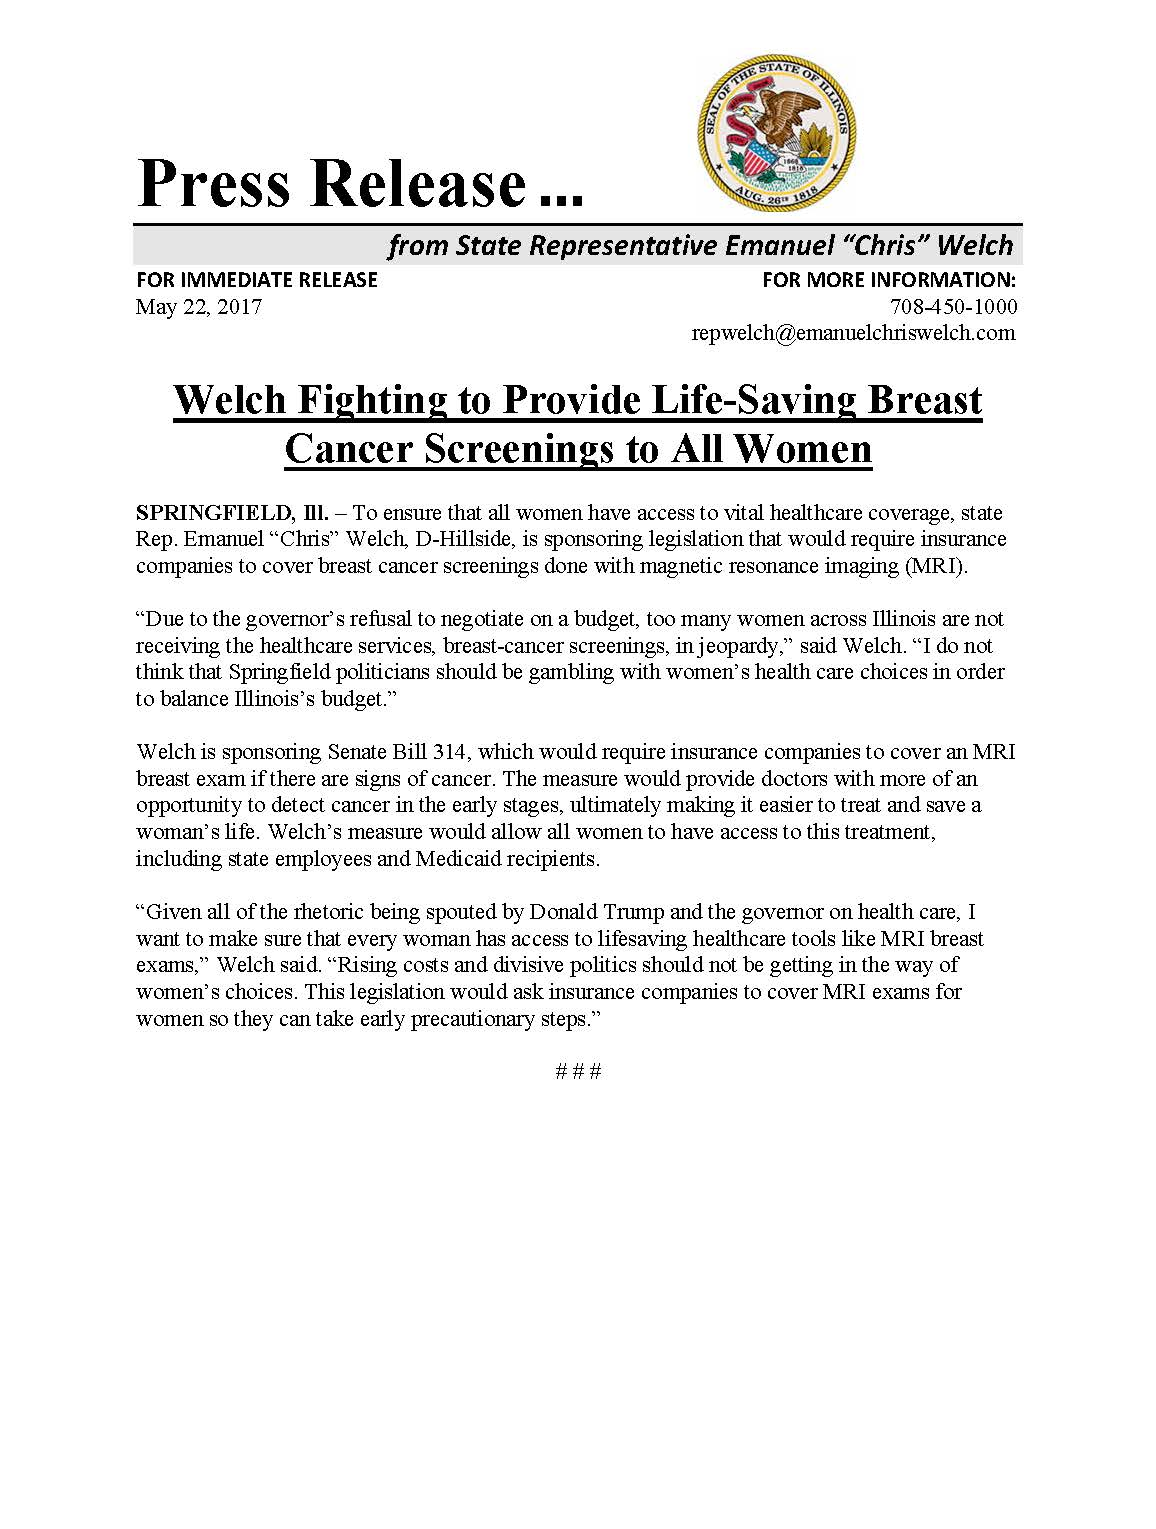 Welch Fighting to Provide Life-Saving Breast Cancer Screenings to All Women  (May 22, 2017)